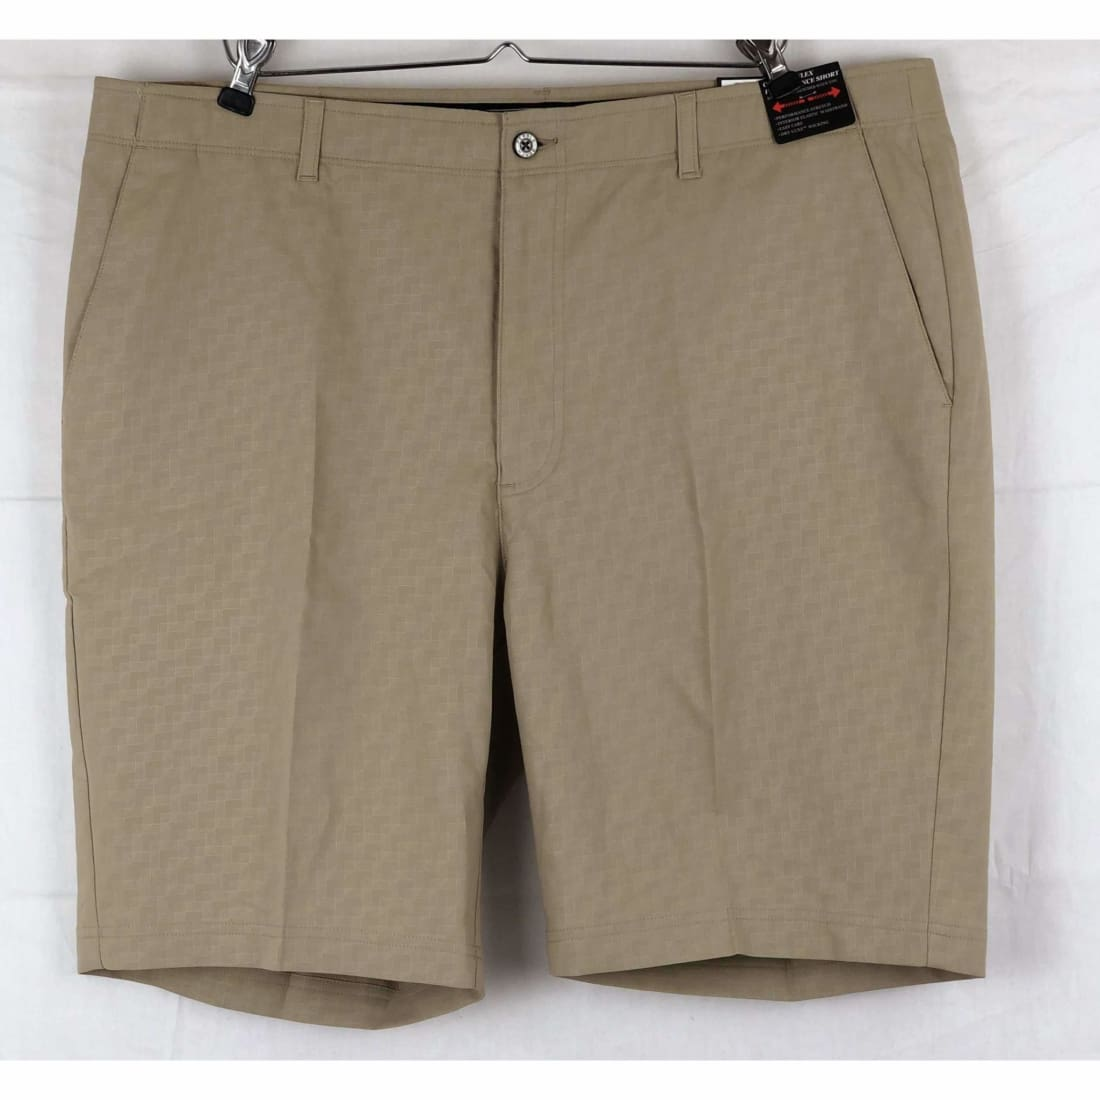 Pebble Beach Mens Dry-Luxe Performance Comfort Waist Short 40 / Classic Fit / Khaki Print Shorts